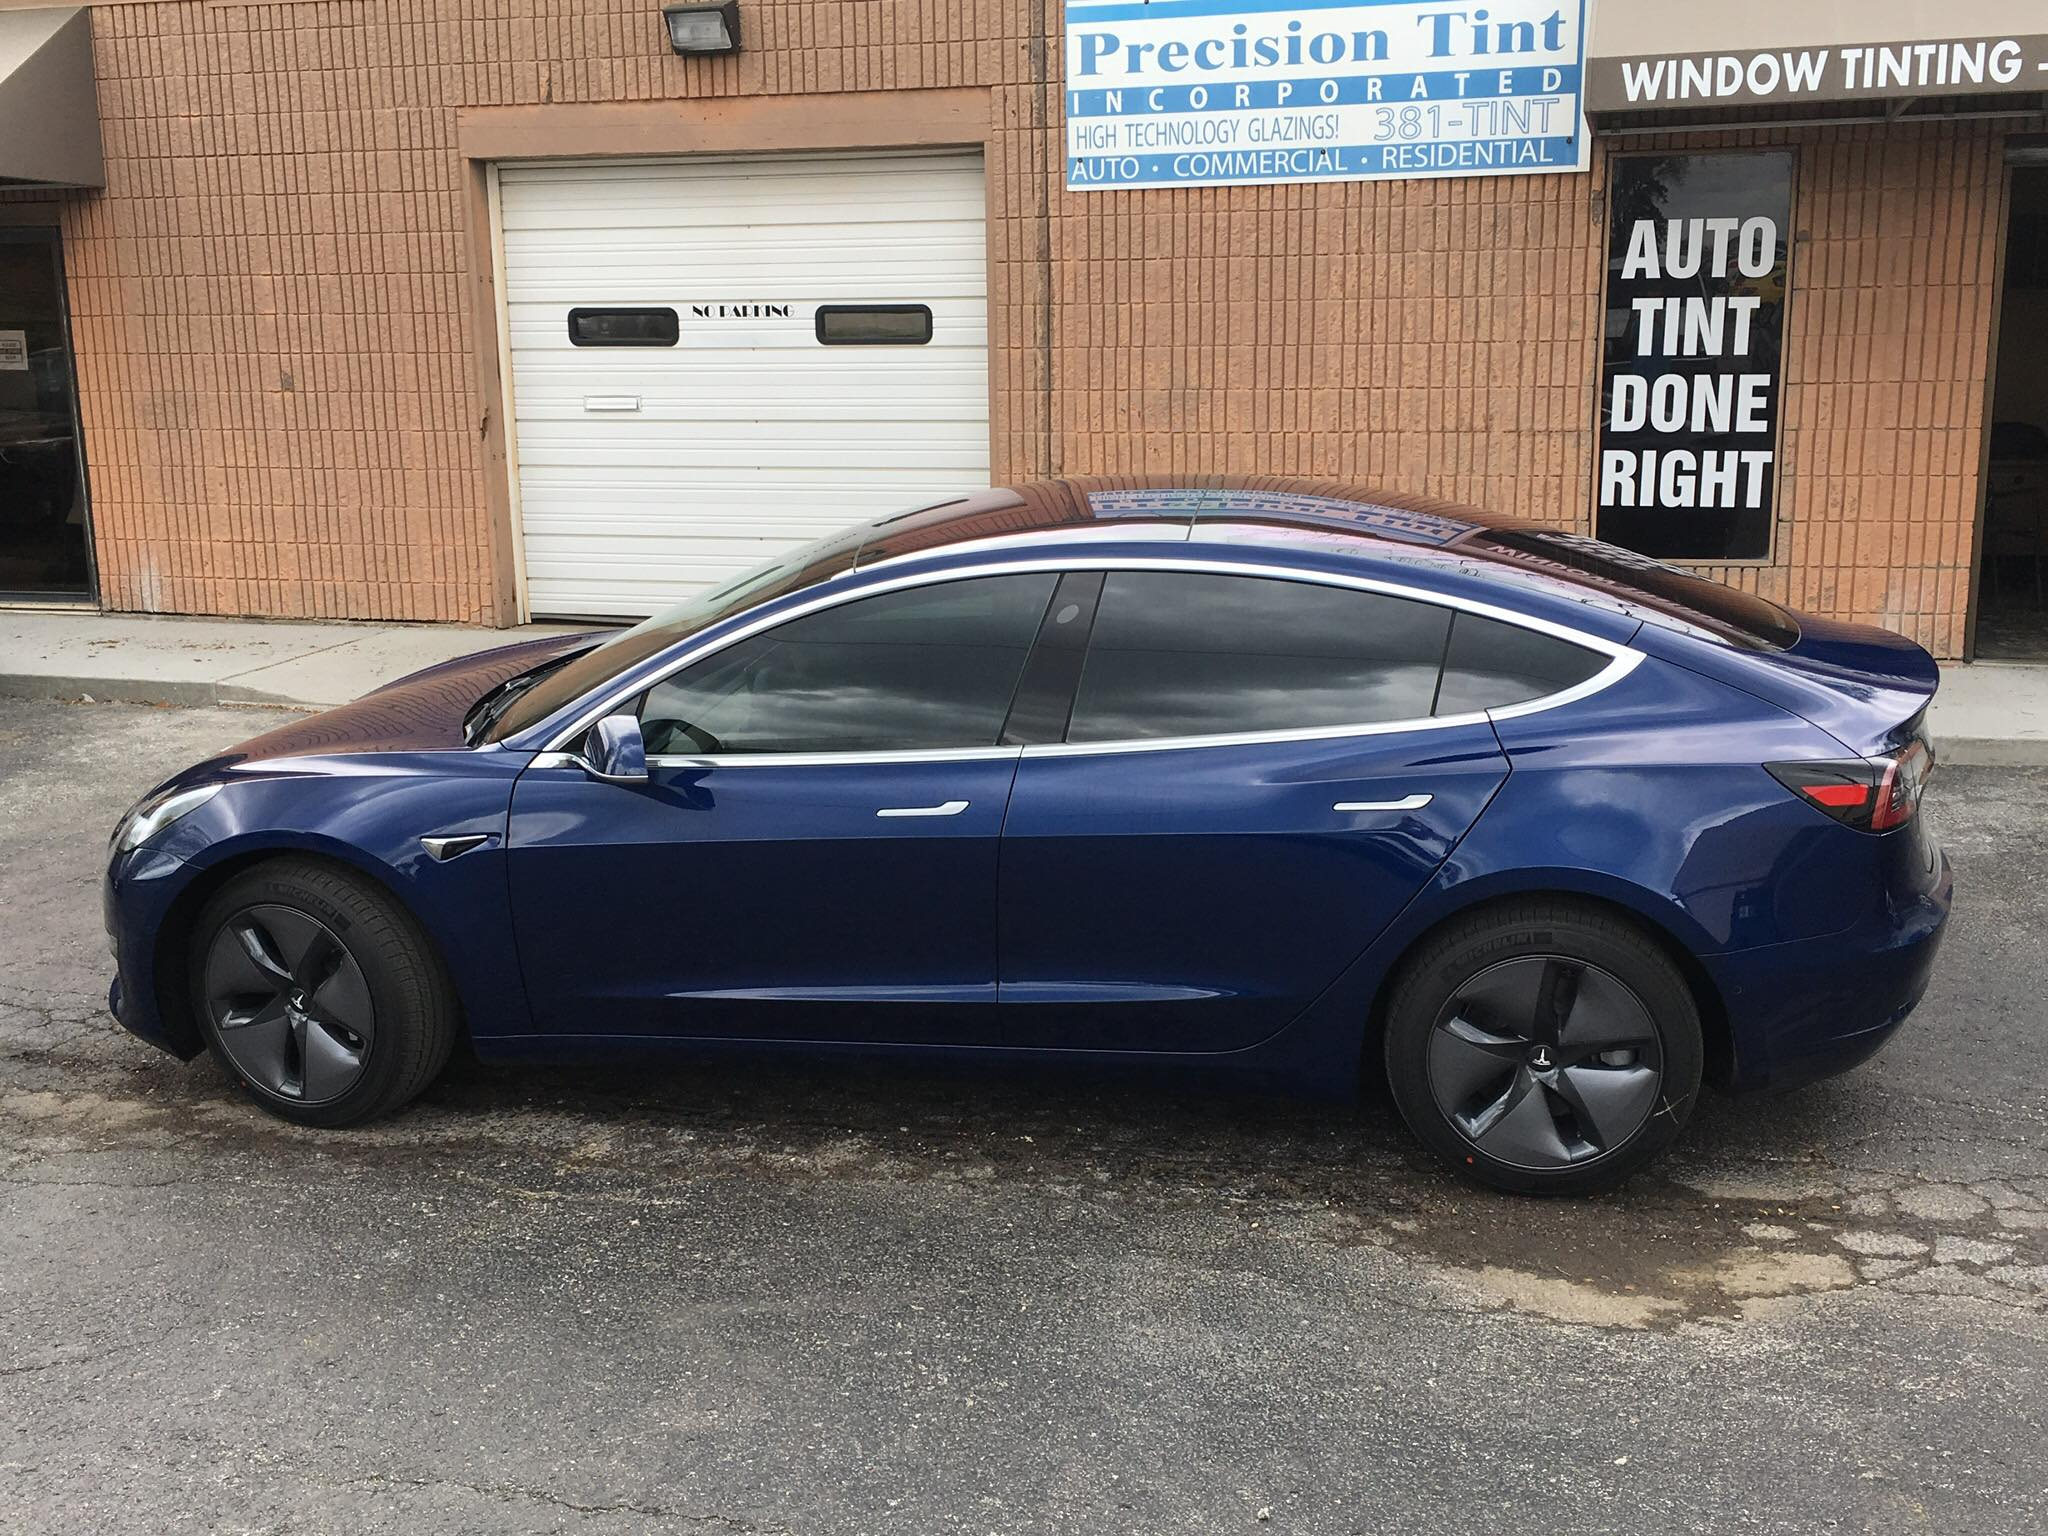 precision tint automotive window tinting kansas city car